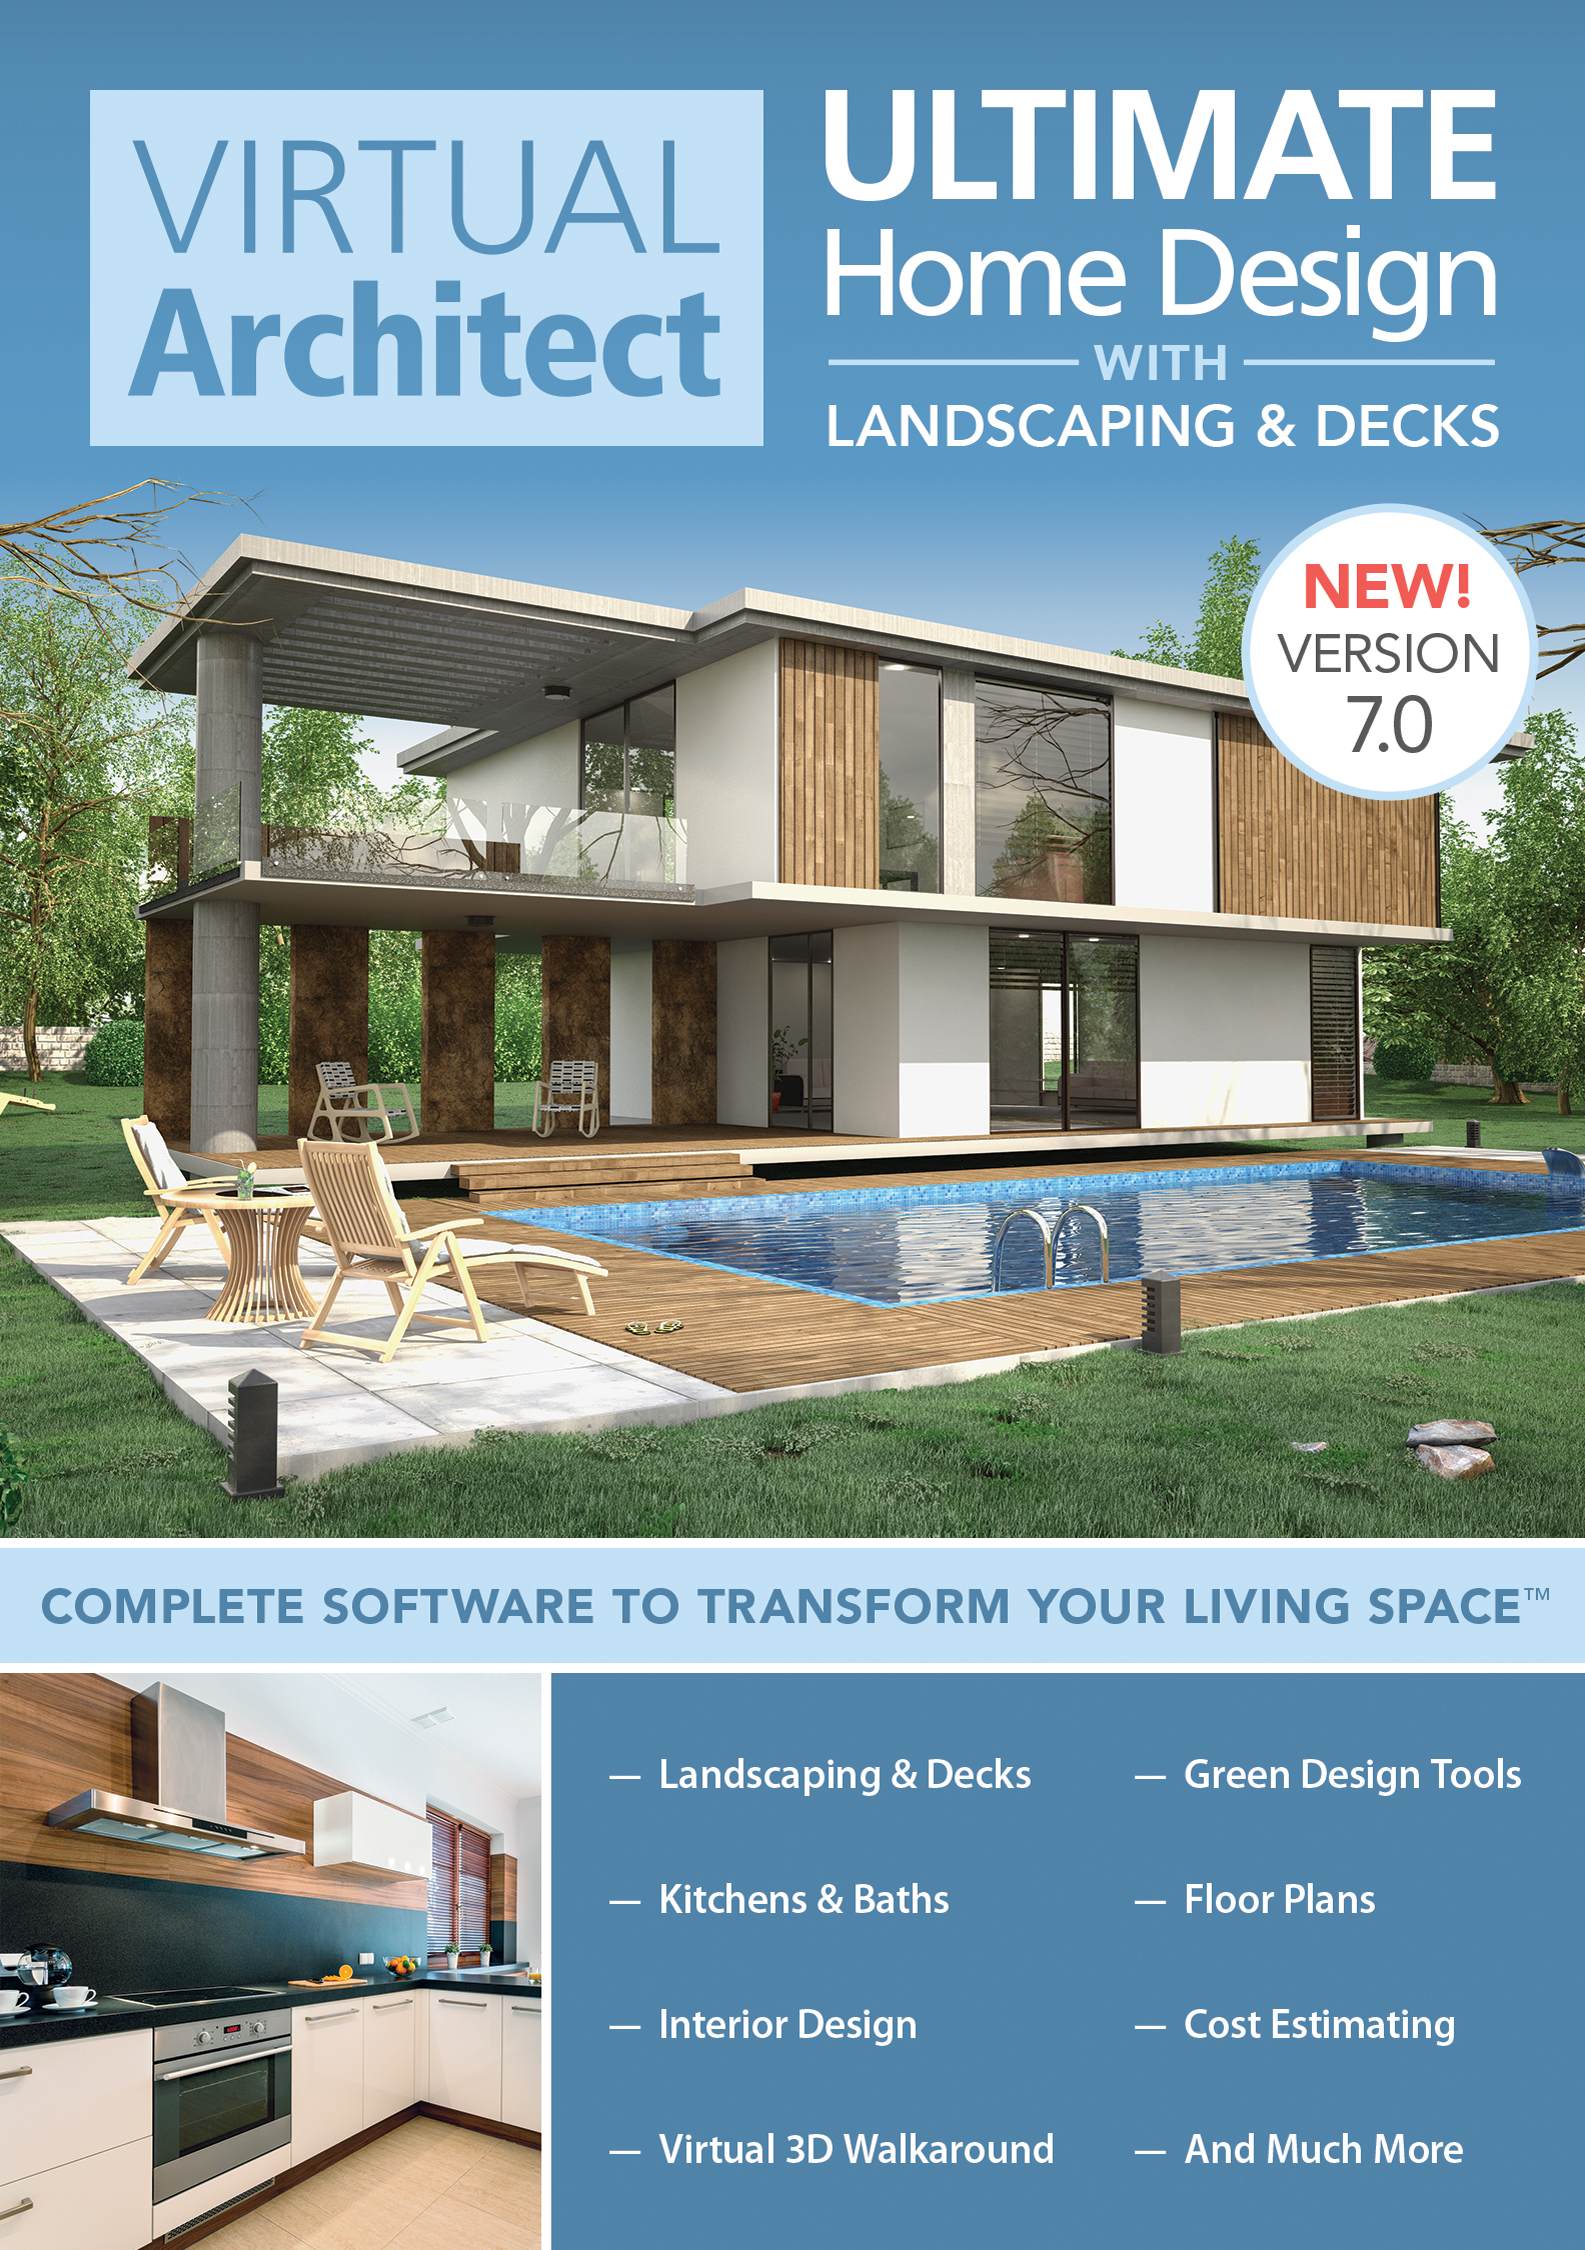 Virtual Architect Ultimate Home Design with Landscaping and Decks 7.0 [Download] by Nova Development